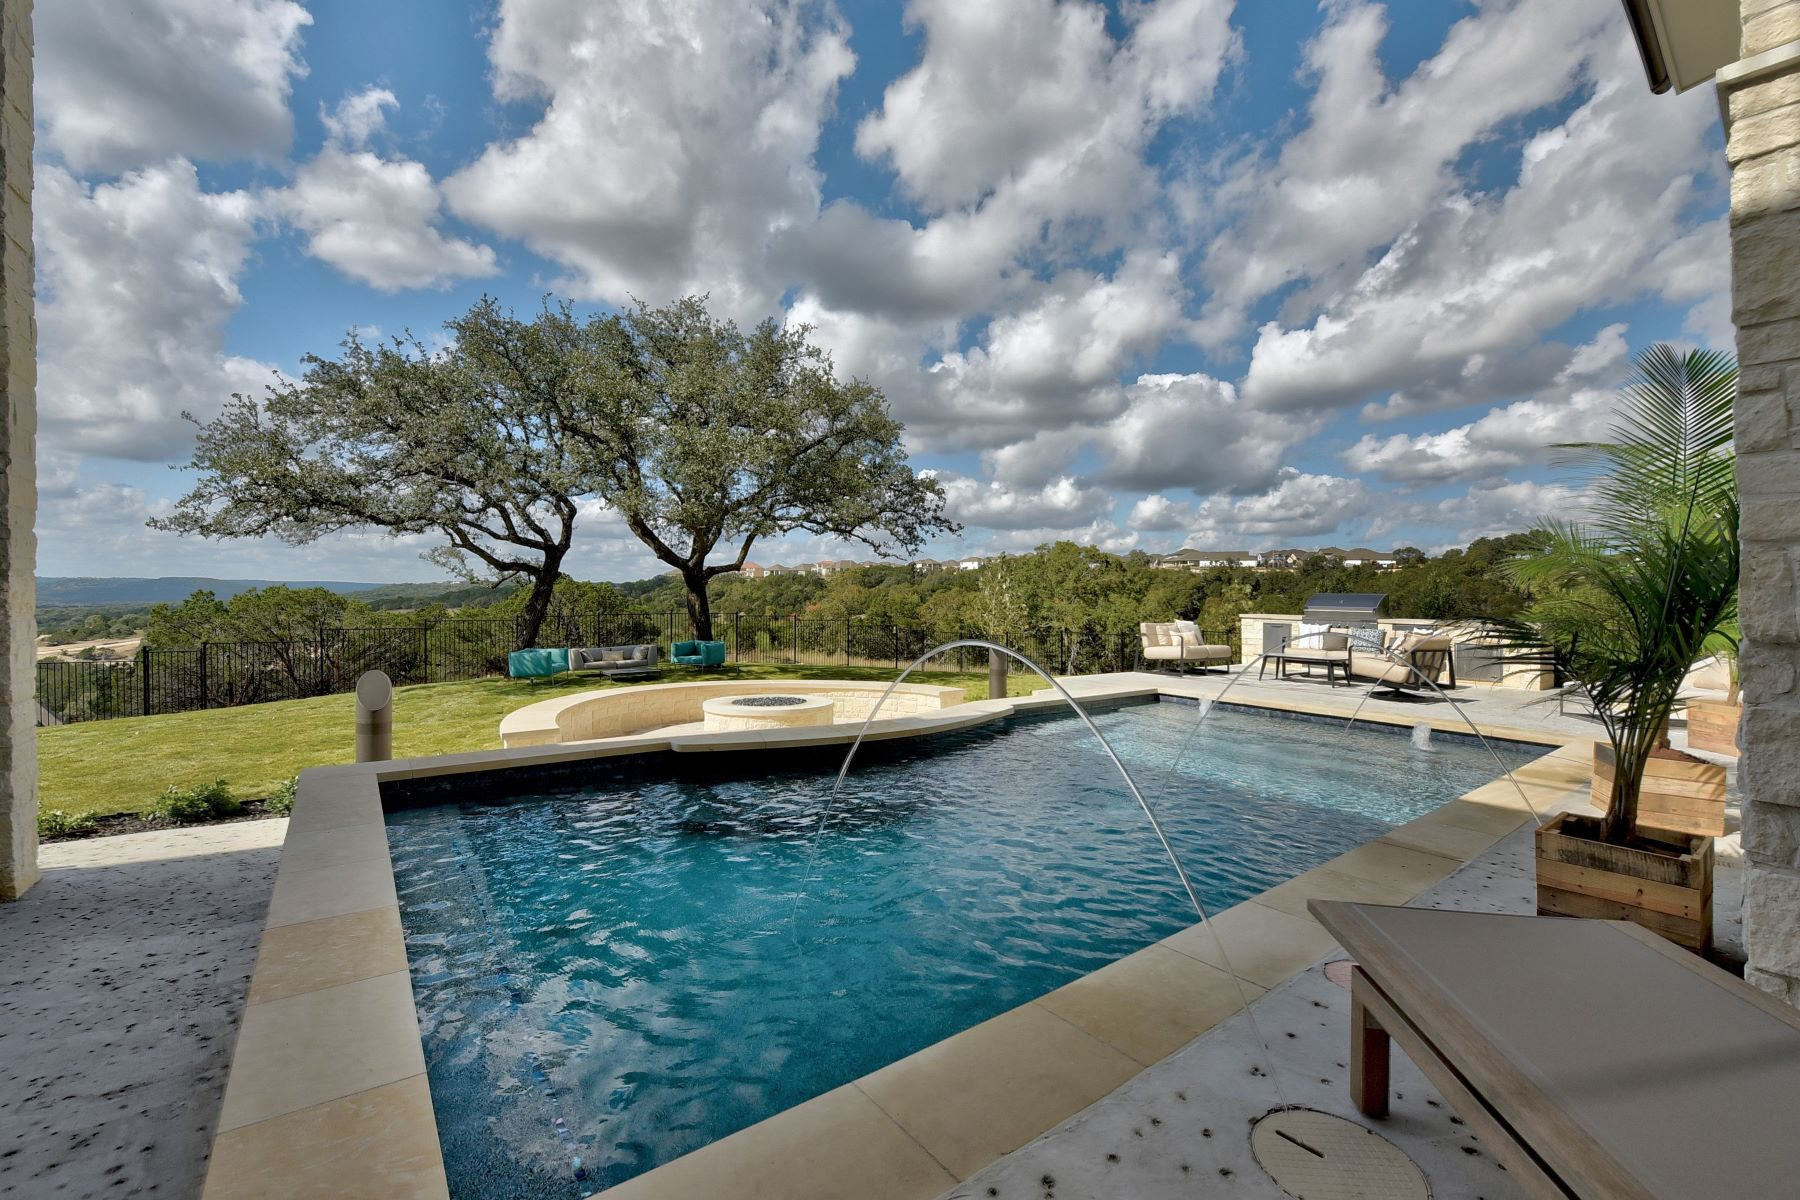 Single Family Homes for Sale at 2013 Skyview Ridge Pass, Leander, TX 78641 2013 Skyview Ridge Pass Leander, Texas 78641 United States